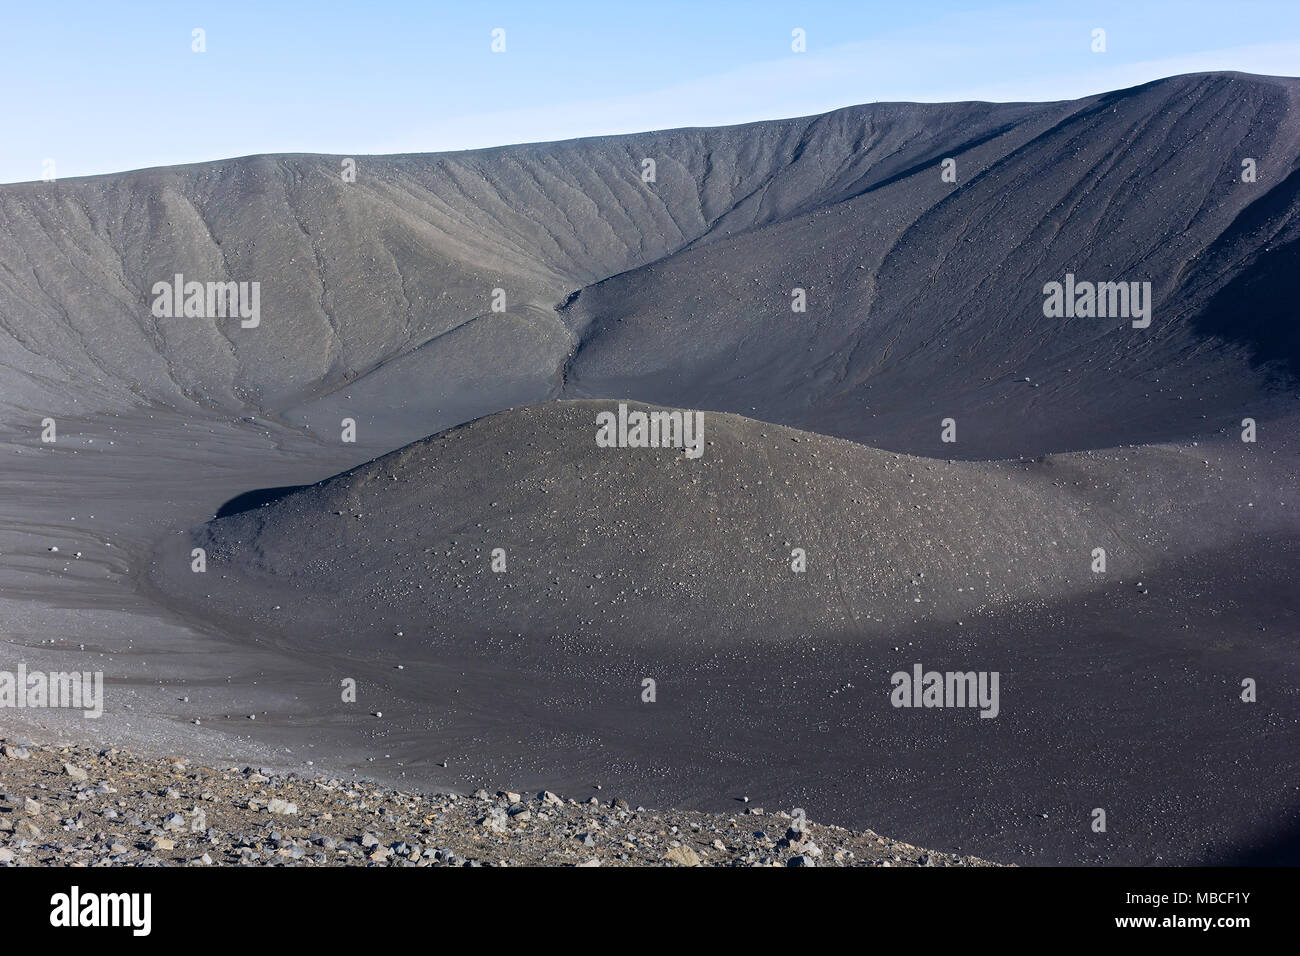 Abstract landscape in light blue and grey in Iceland. Terrain in Iceland under a blue sky. - Stock Image